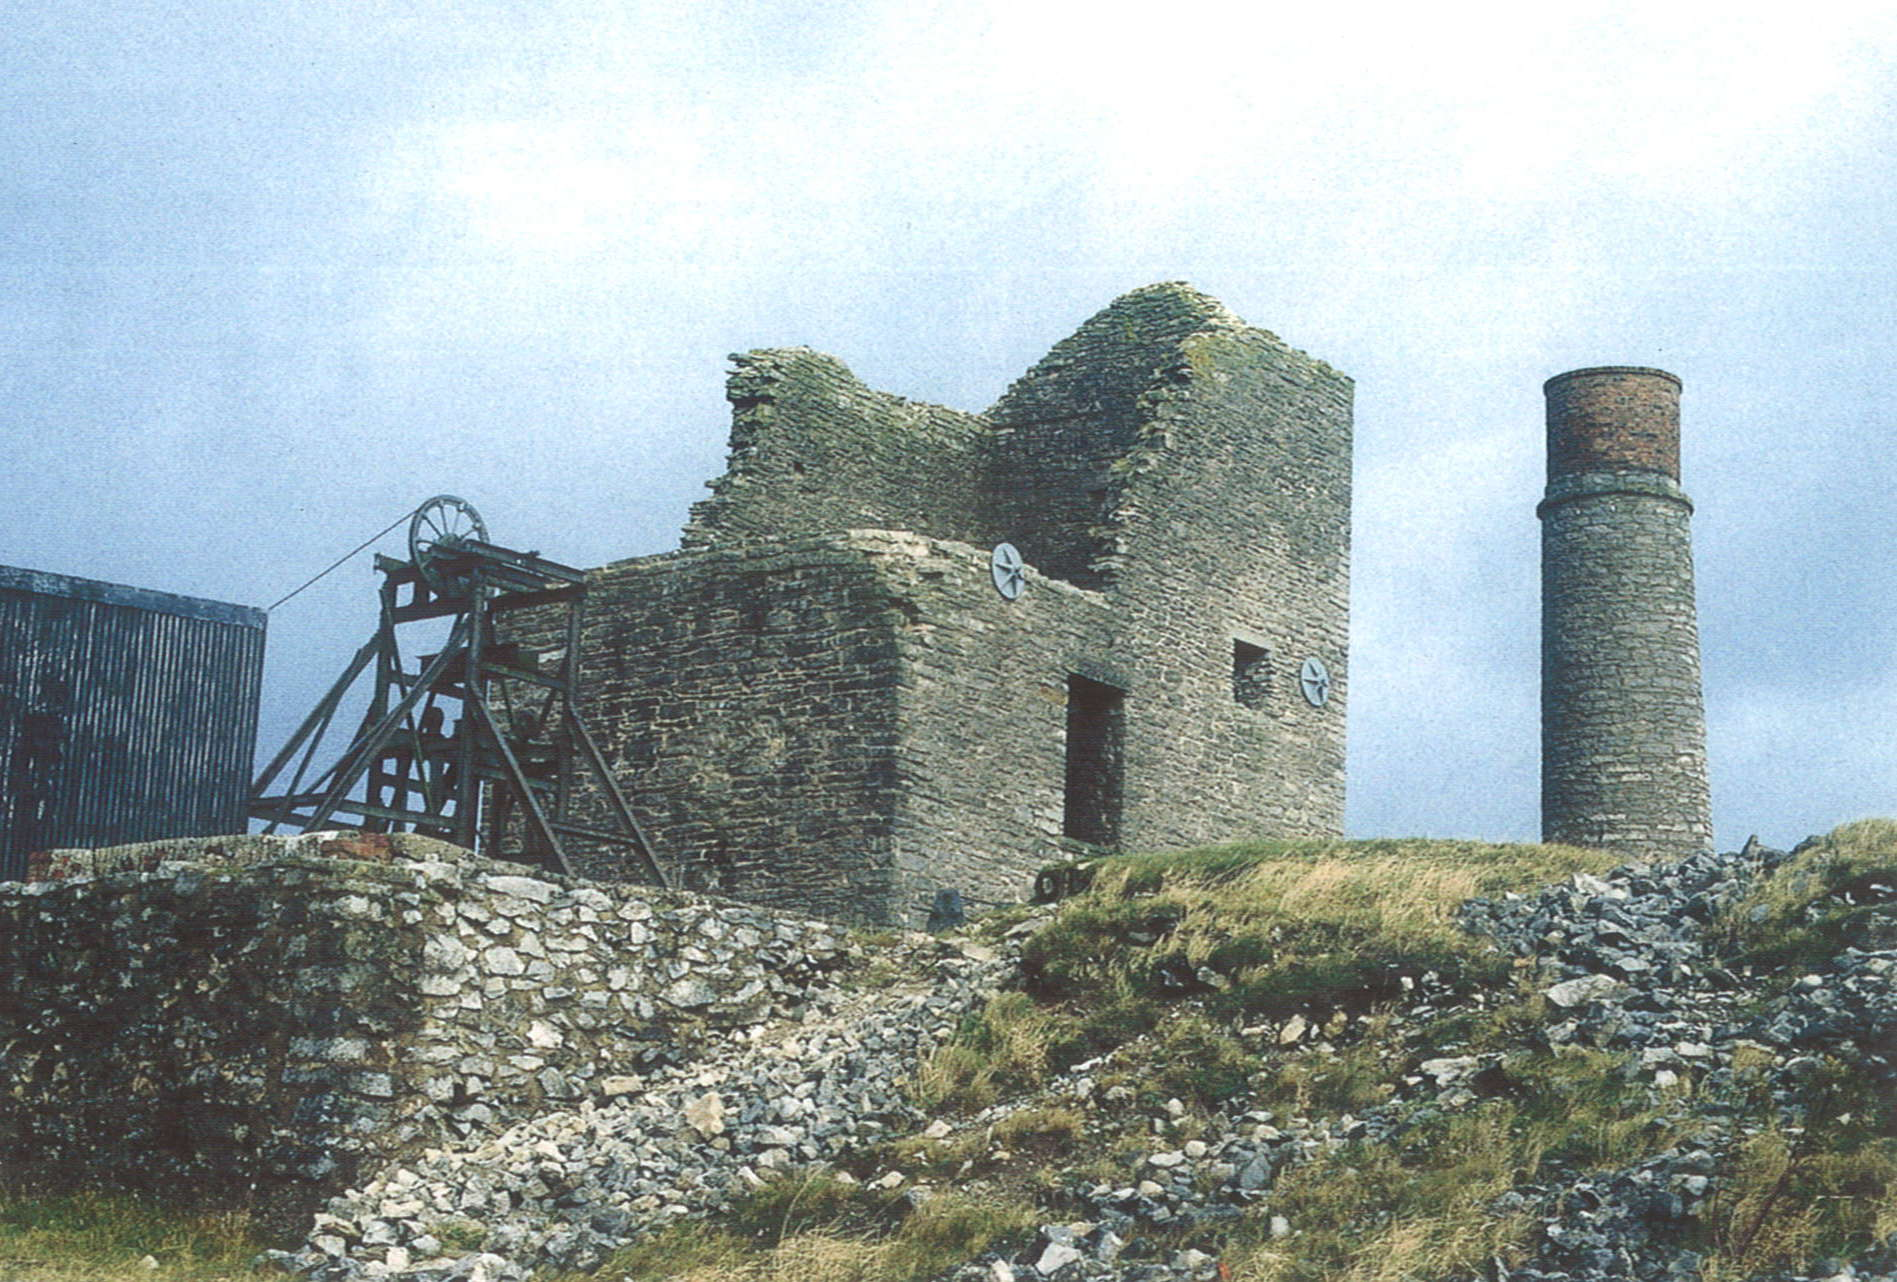 A photograph showing a ruined stone building and some wooden machinery. In the foreground is a grassy hillside strewn with rubble, and in the background can be seen a stone chimney.